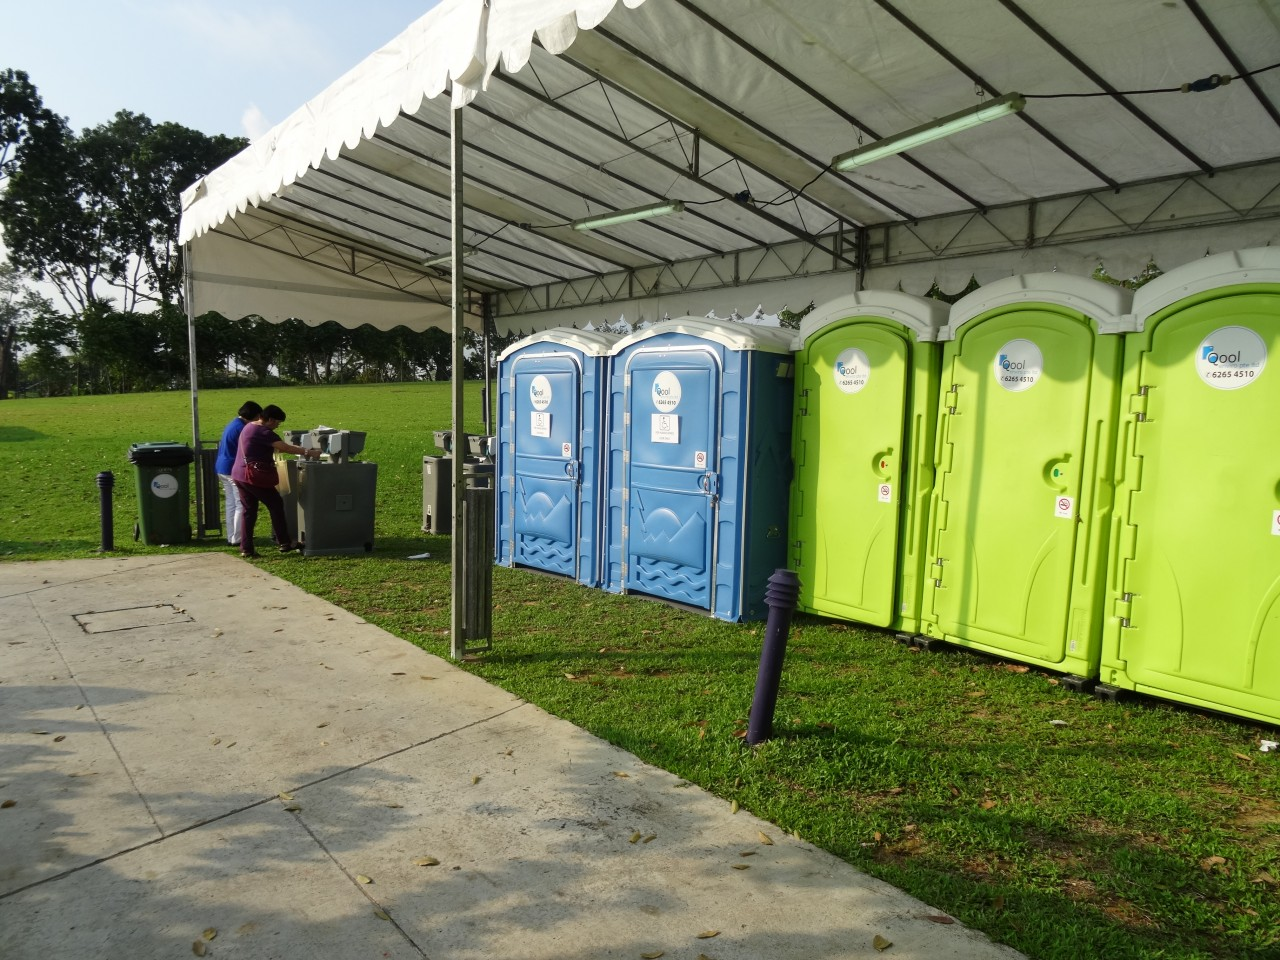 qool enviro portable toilet in moe celebrate sg50 2